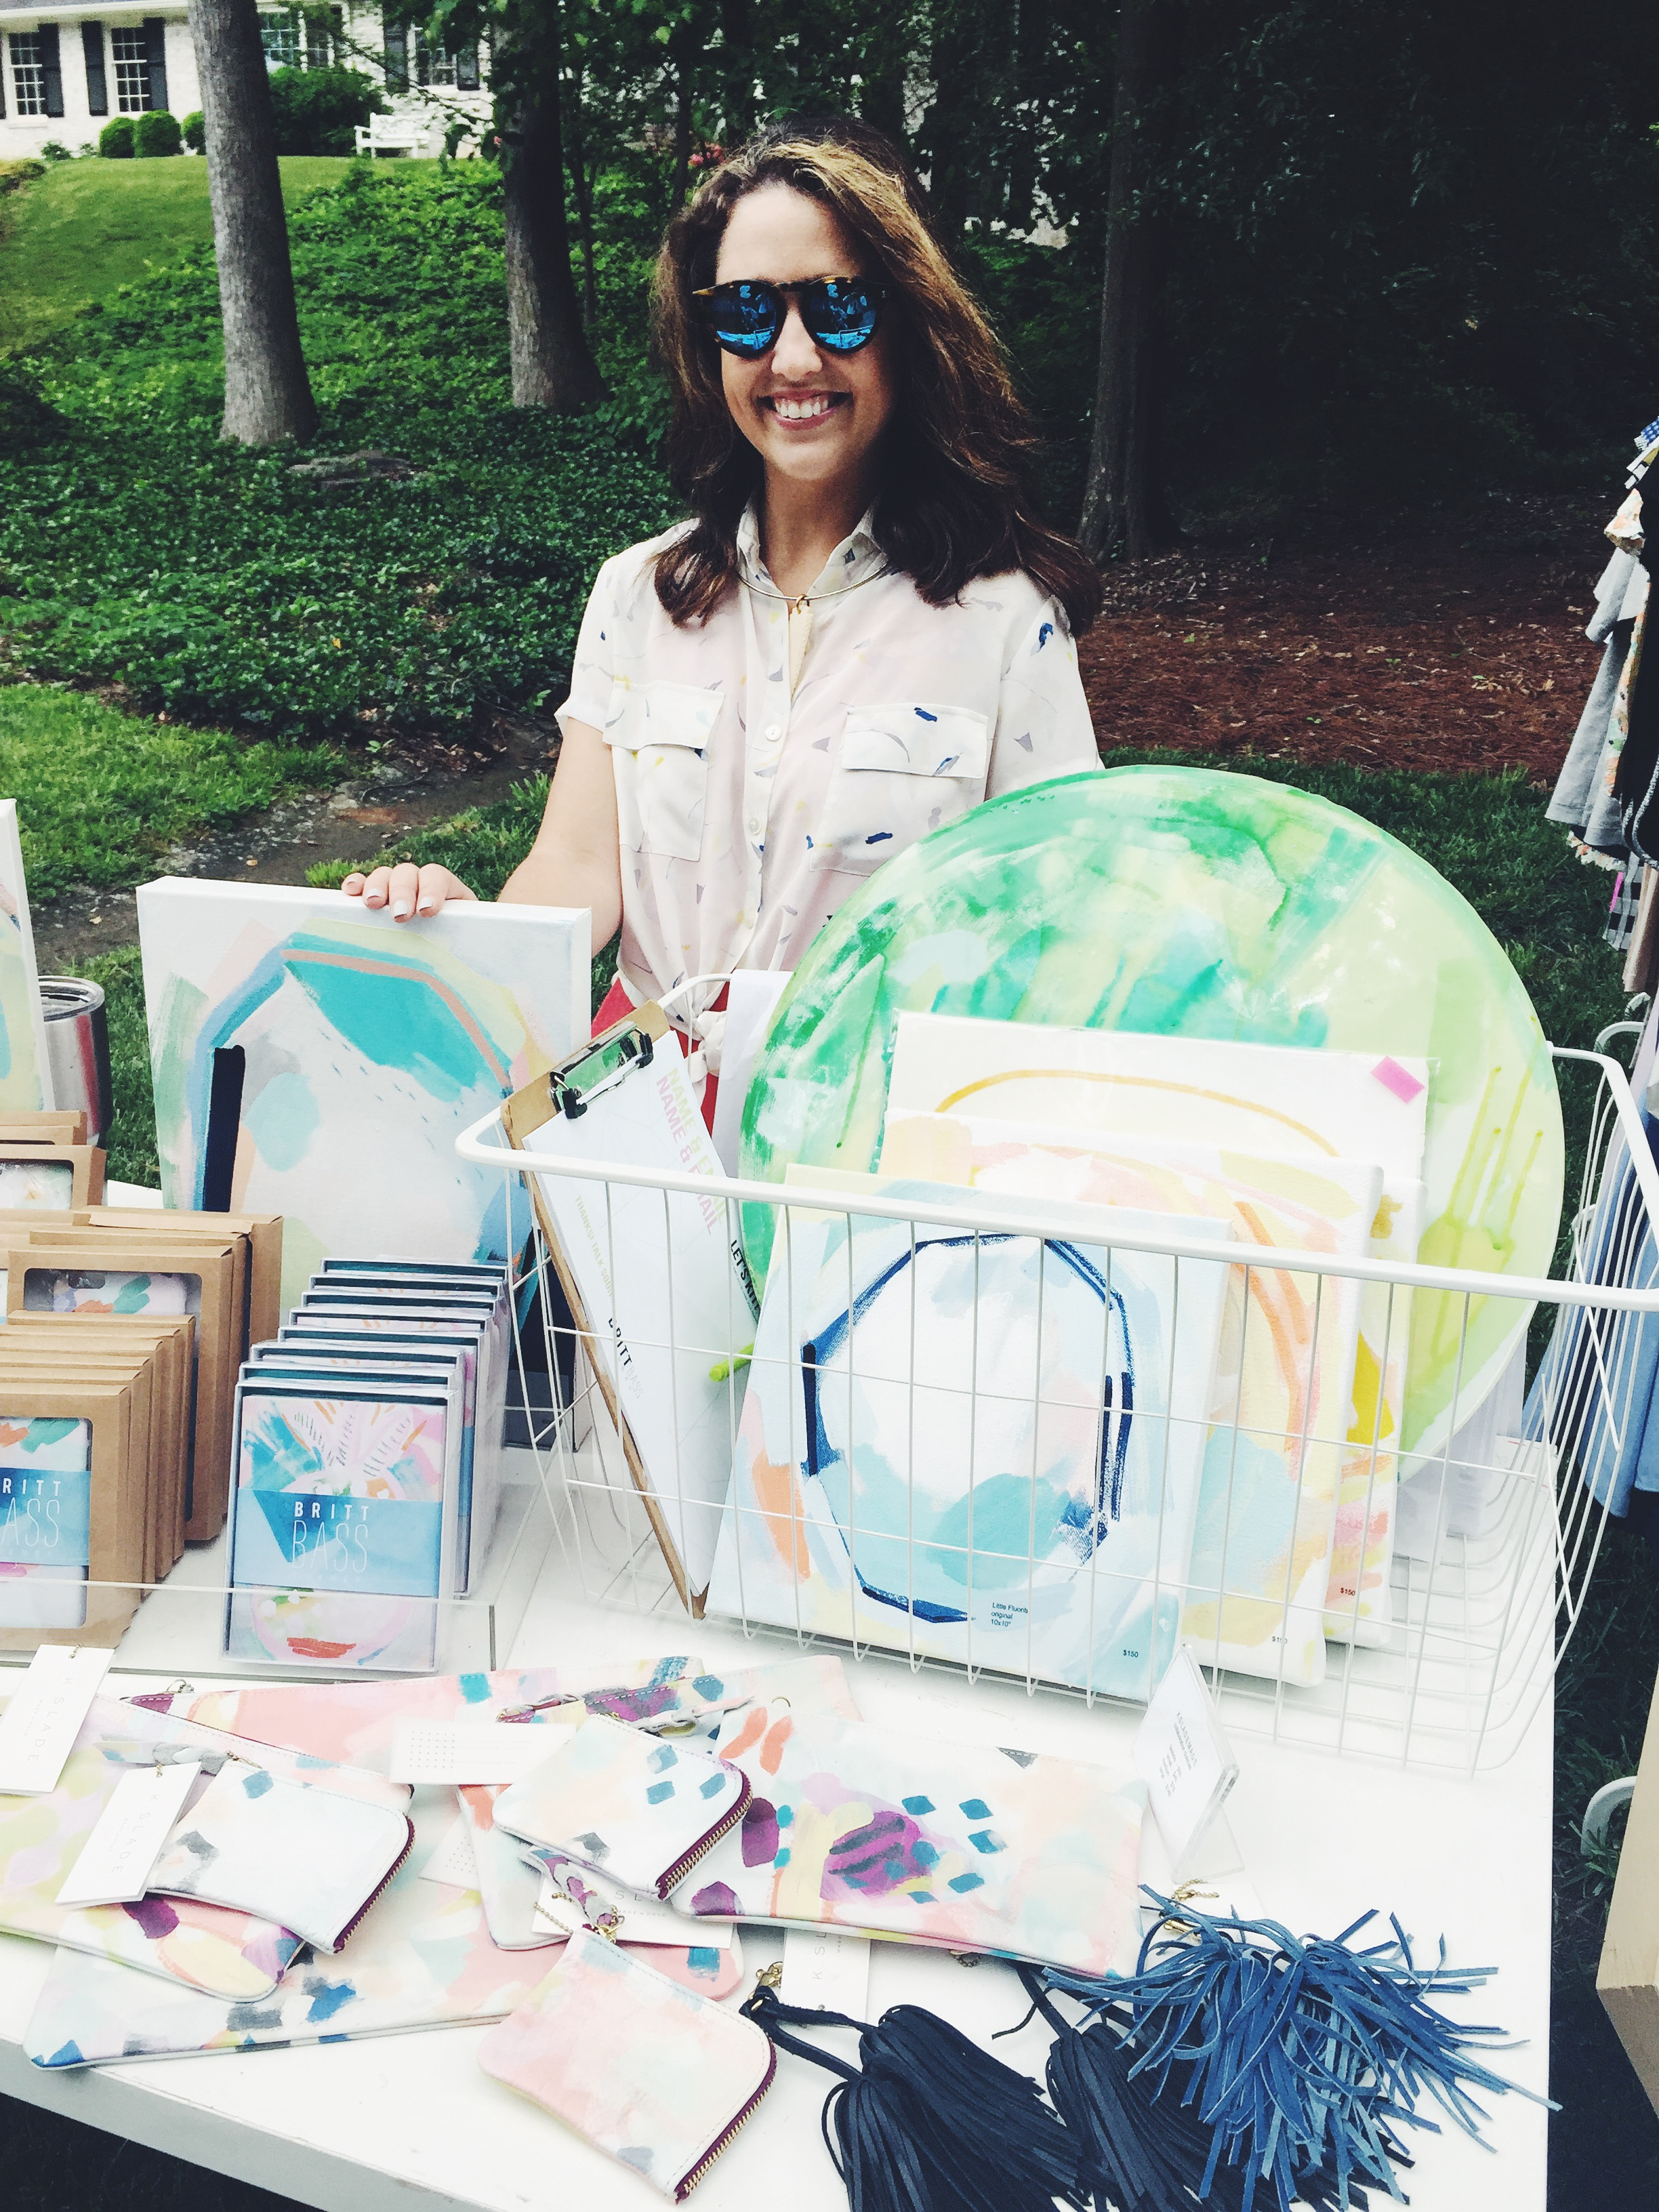 Britt Bass with Original Paintings and Gifts